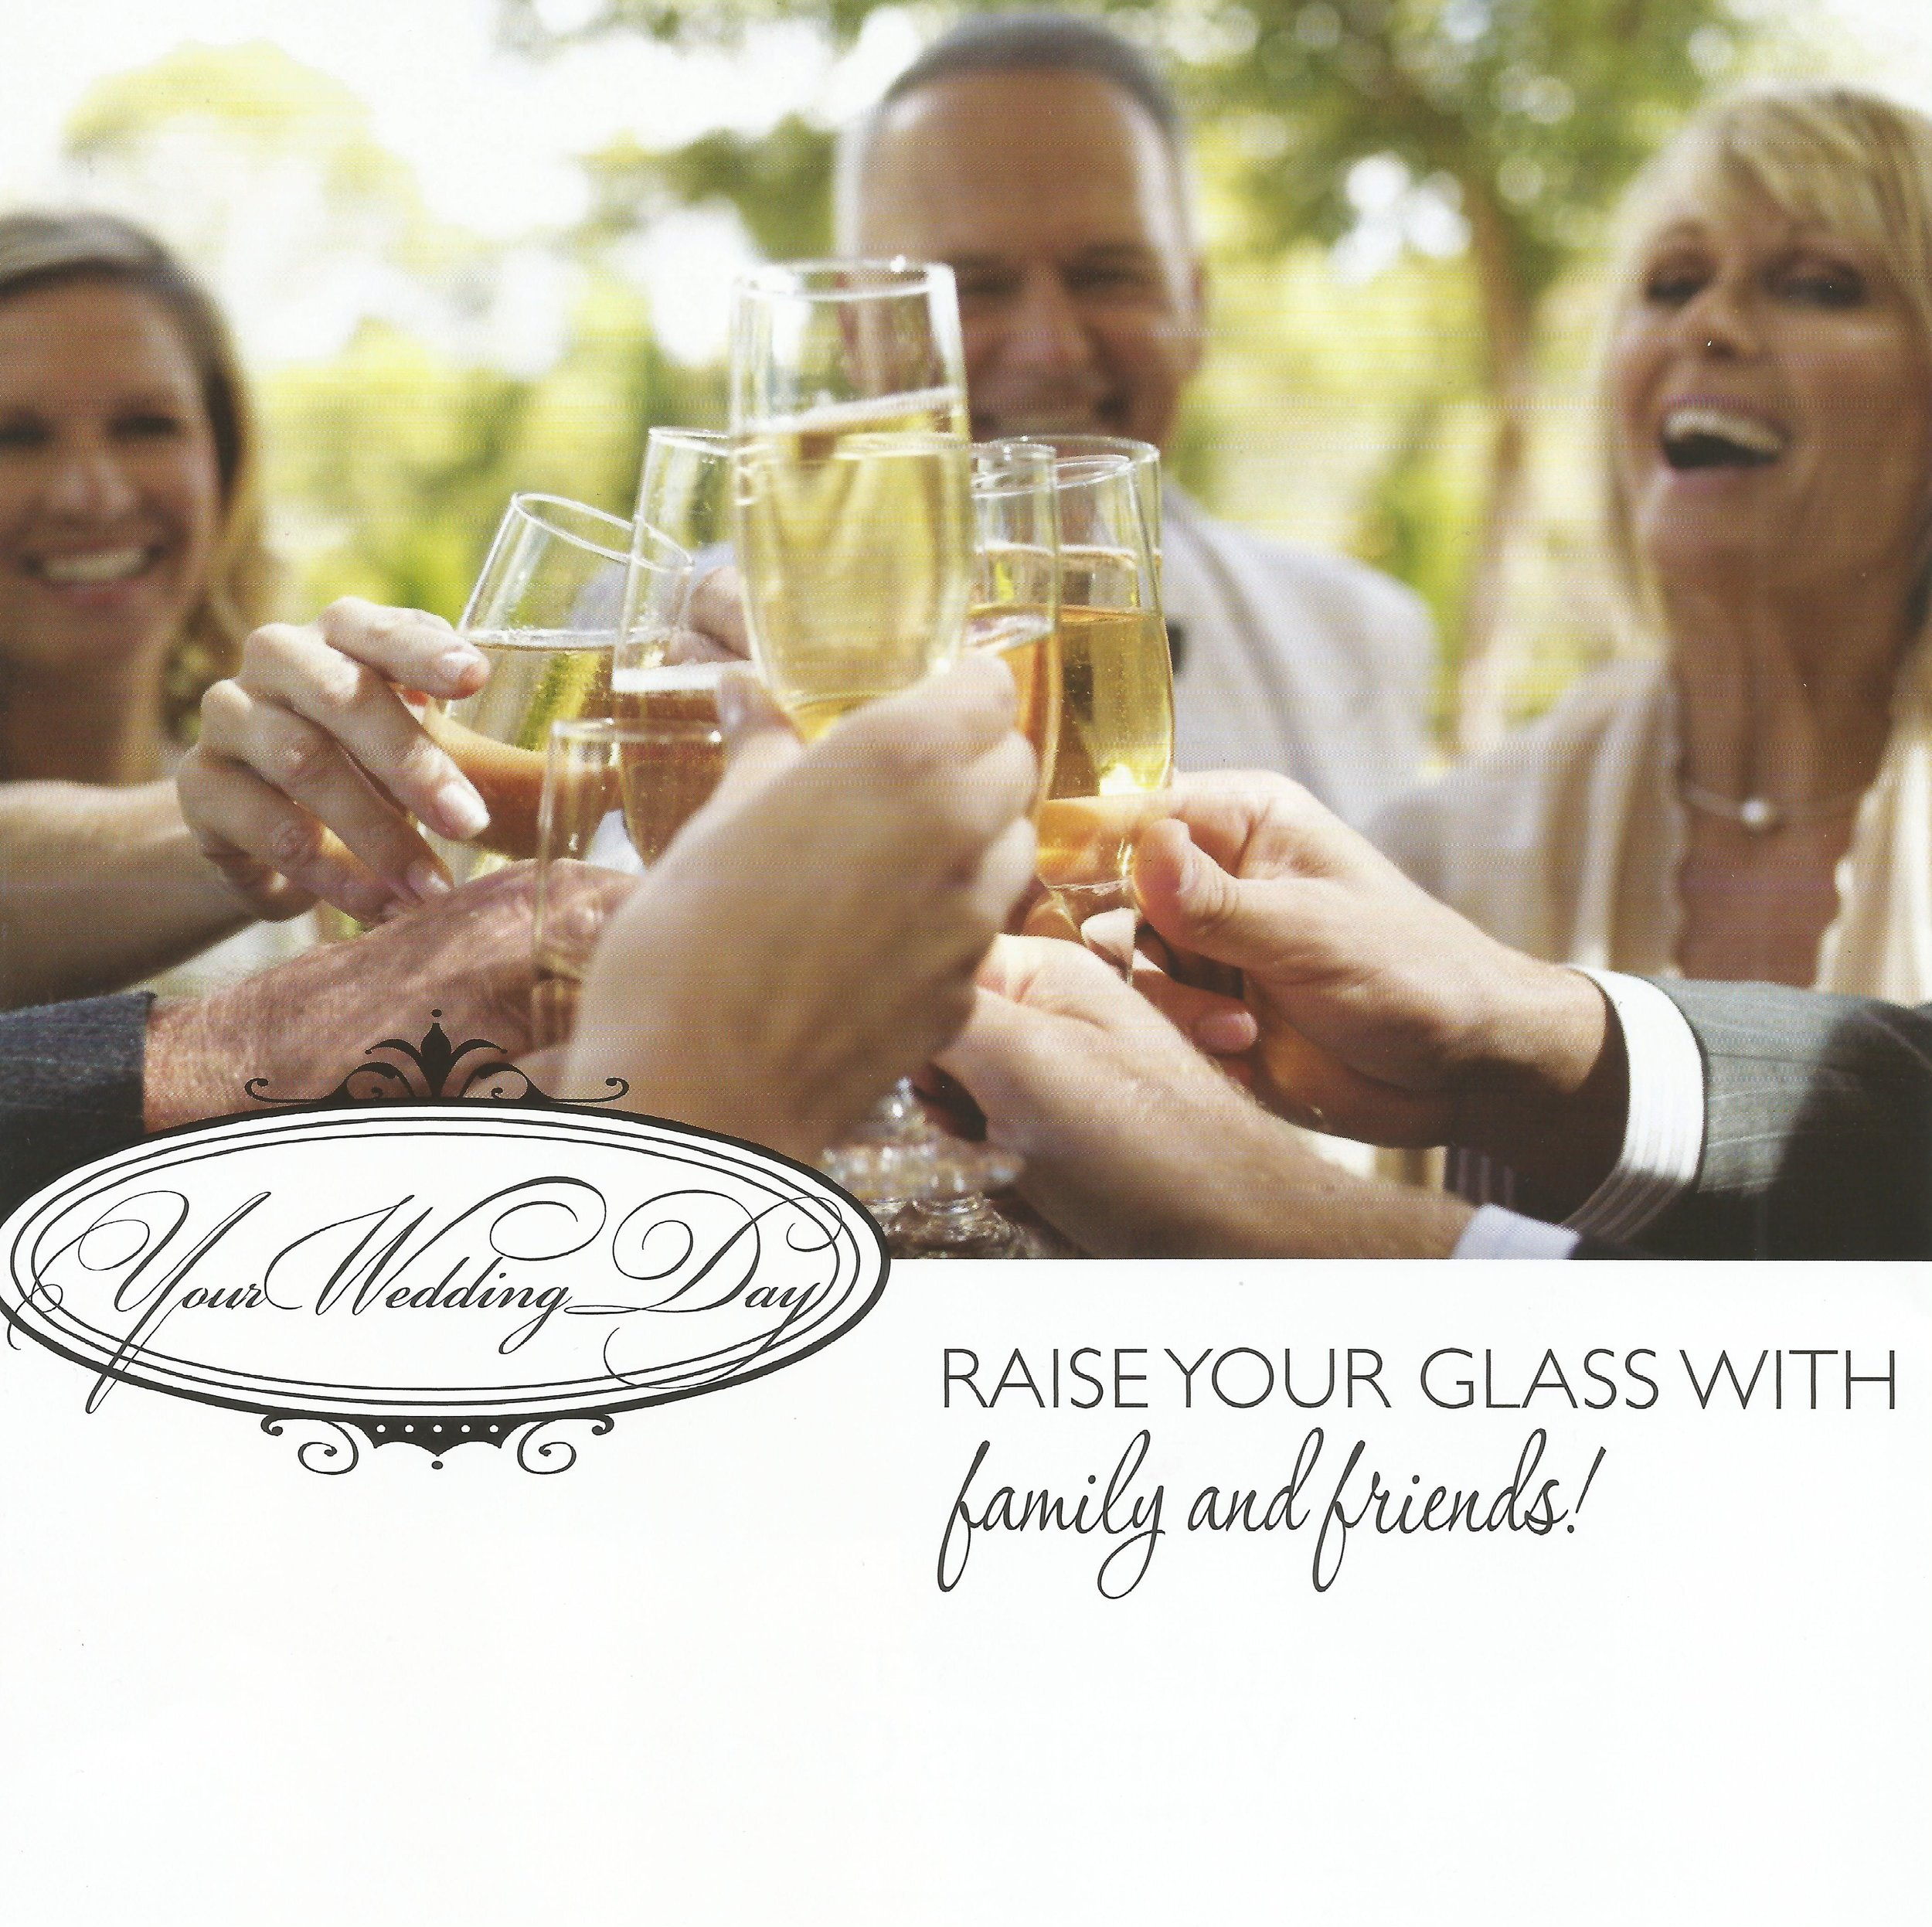 Weddings are filled with memories and touching experiences. When you craft and serve your wine with your personalized label your family and guests will be talking about your wedding for years.